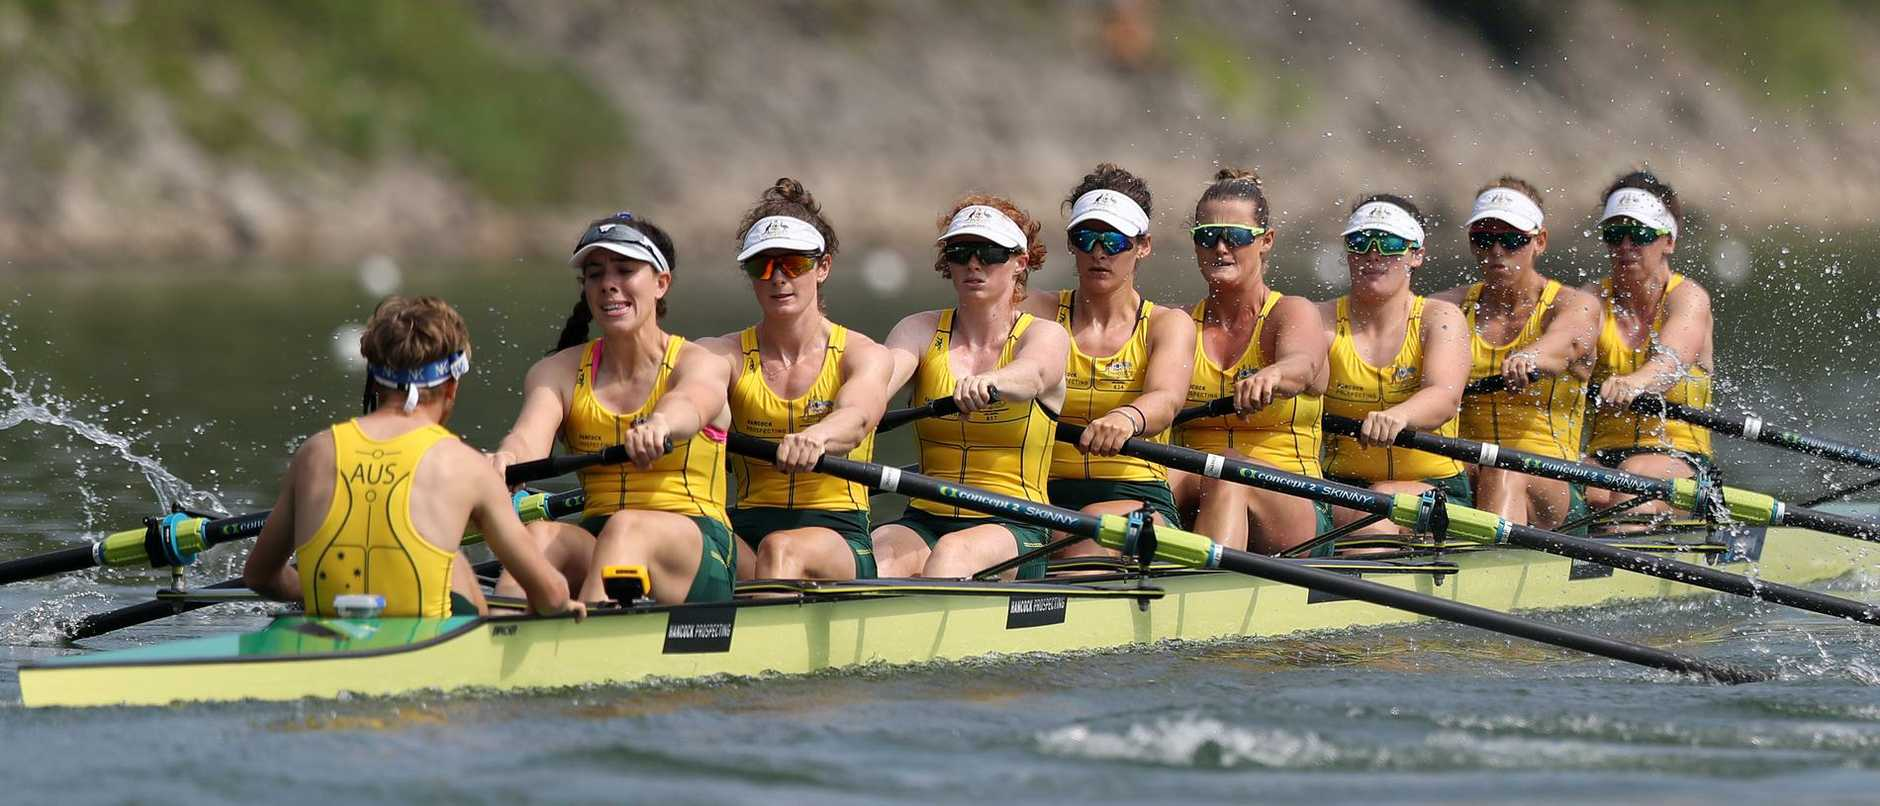 Tokyo Olympics 2021: How COVID-19 has boosted Australia's hopes of rowing glory